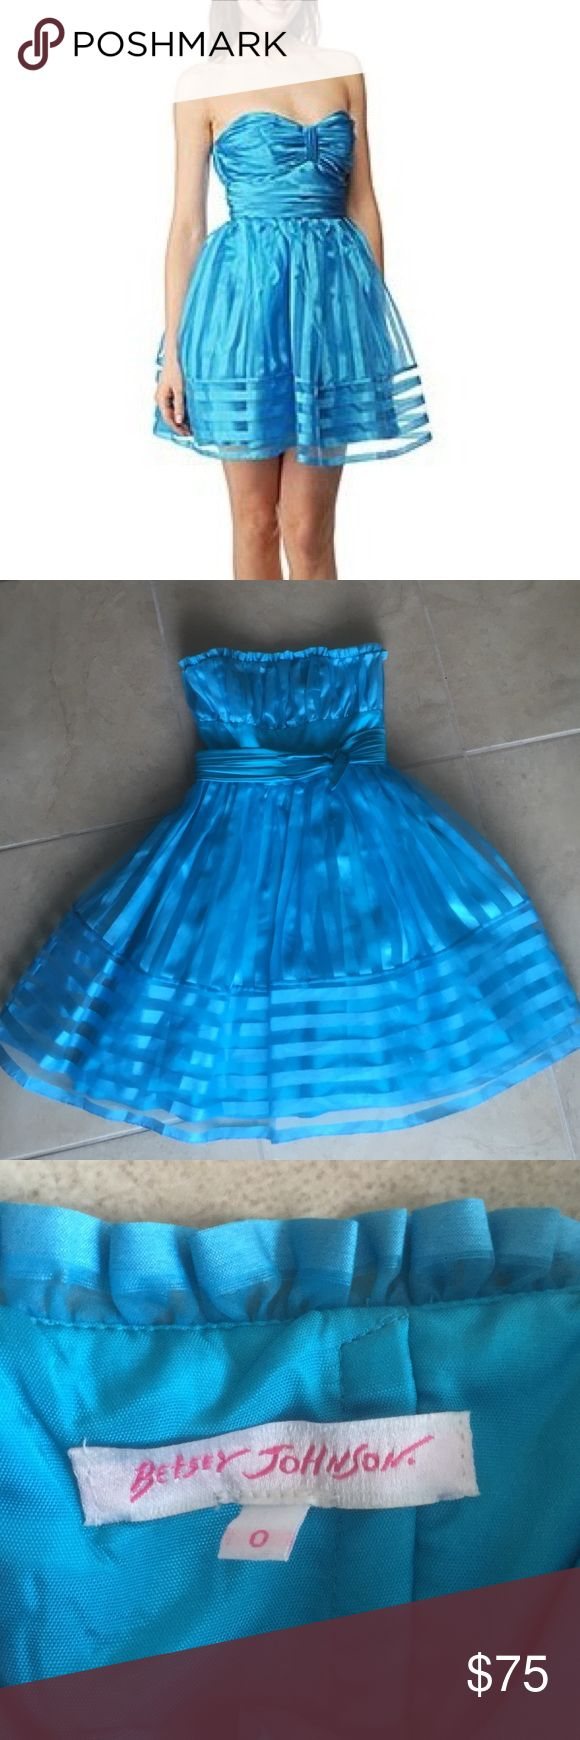 Betsey Johnson blue striped dress. Like New Worn once on my birthday. Great condition electric blue striped dress Betsey Johnson Dresses Prom